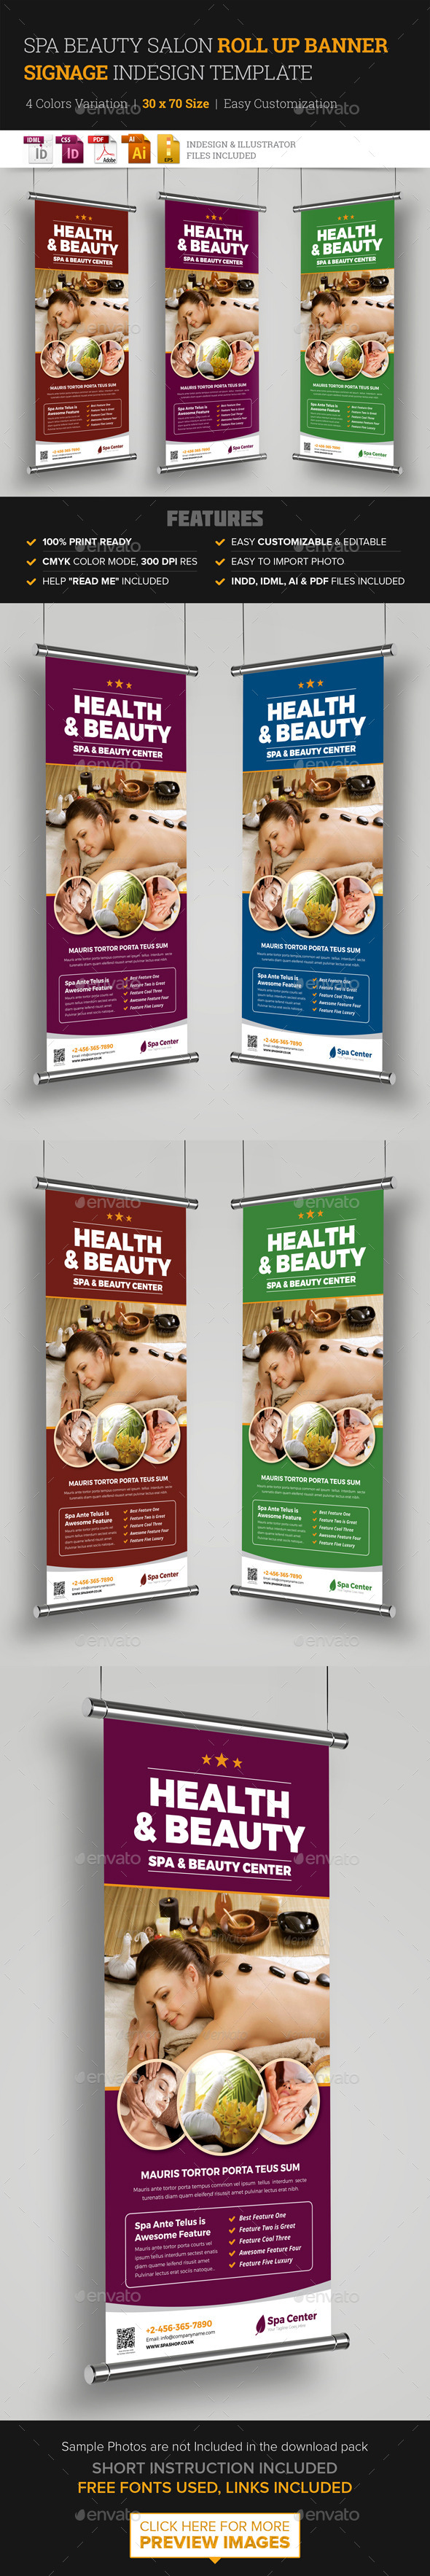 Spa Beauty Roll Up Banner Signage InDesign - Signage Print Templates